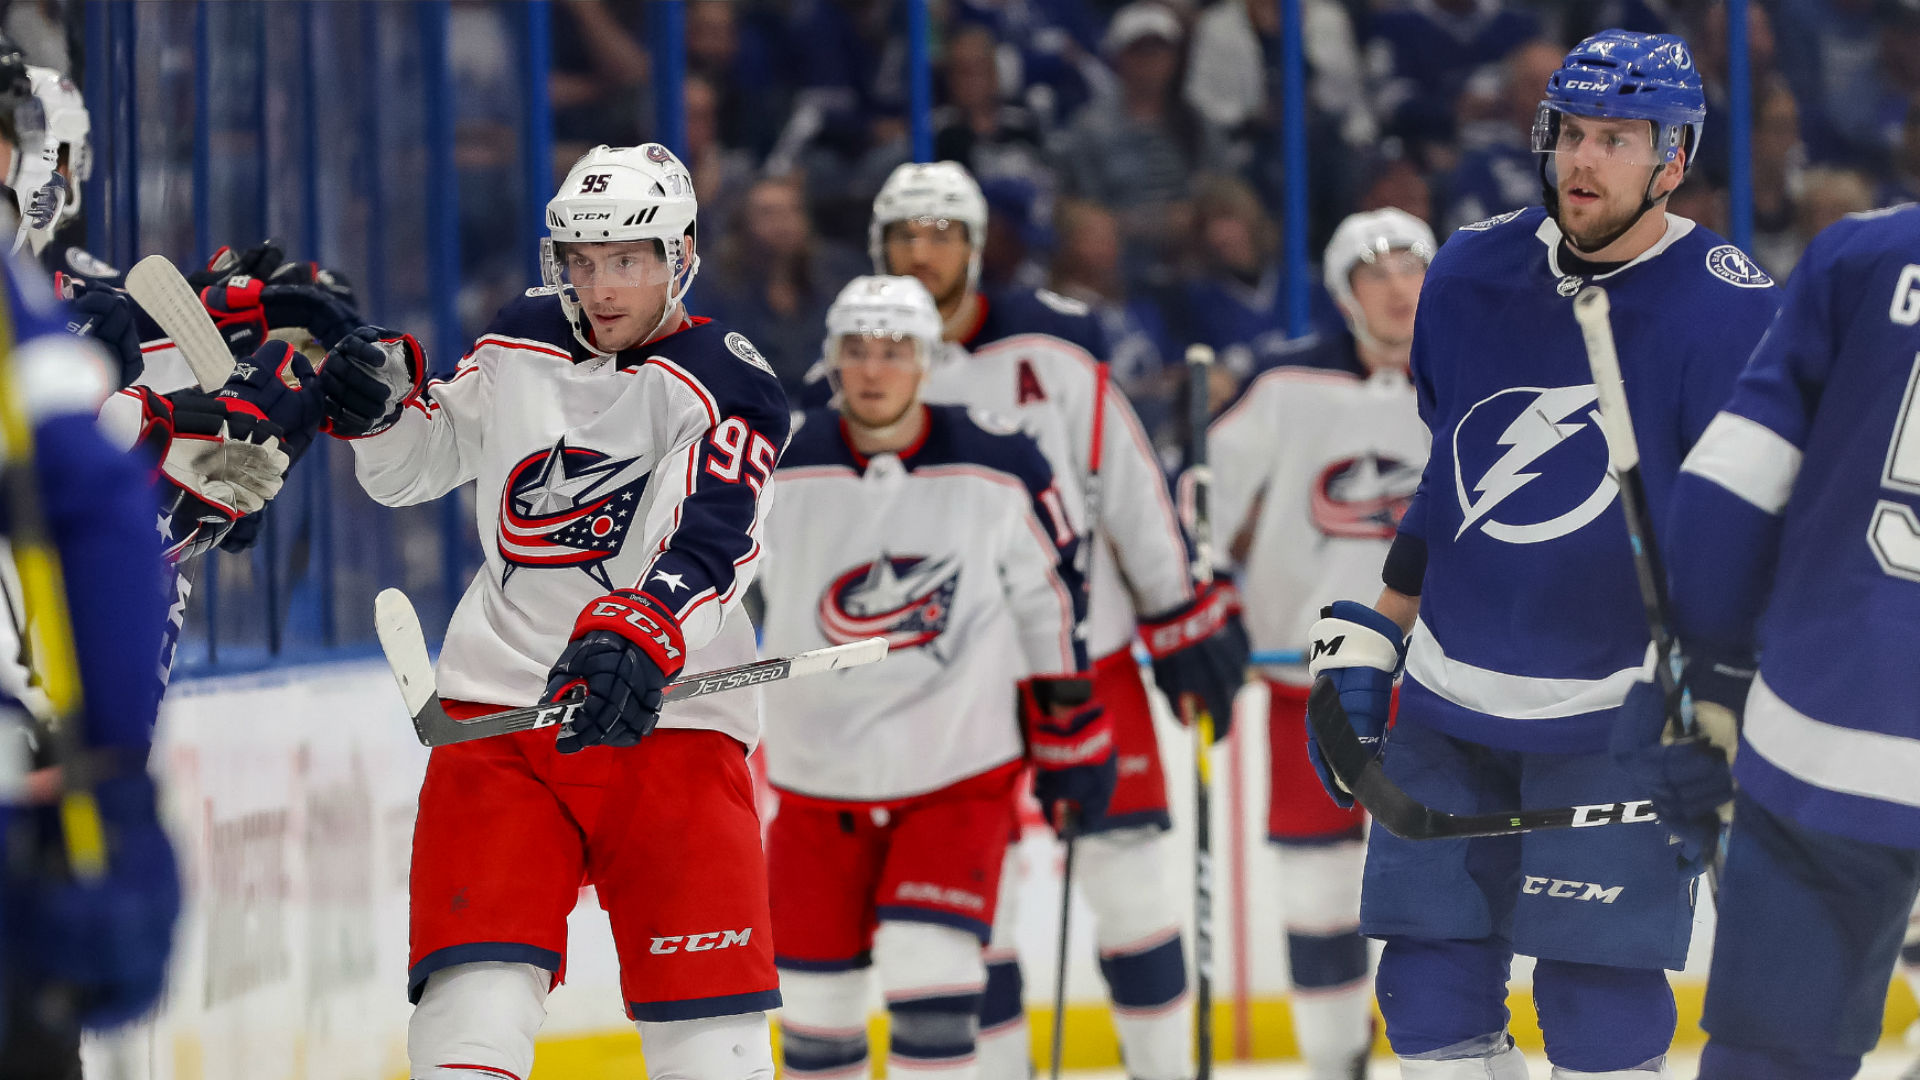 Nikita Kucherov suspended 1 game for boarding Markus Nutivaara